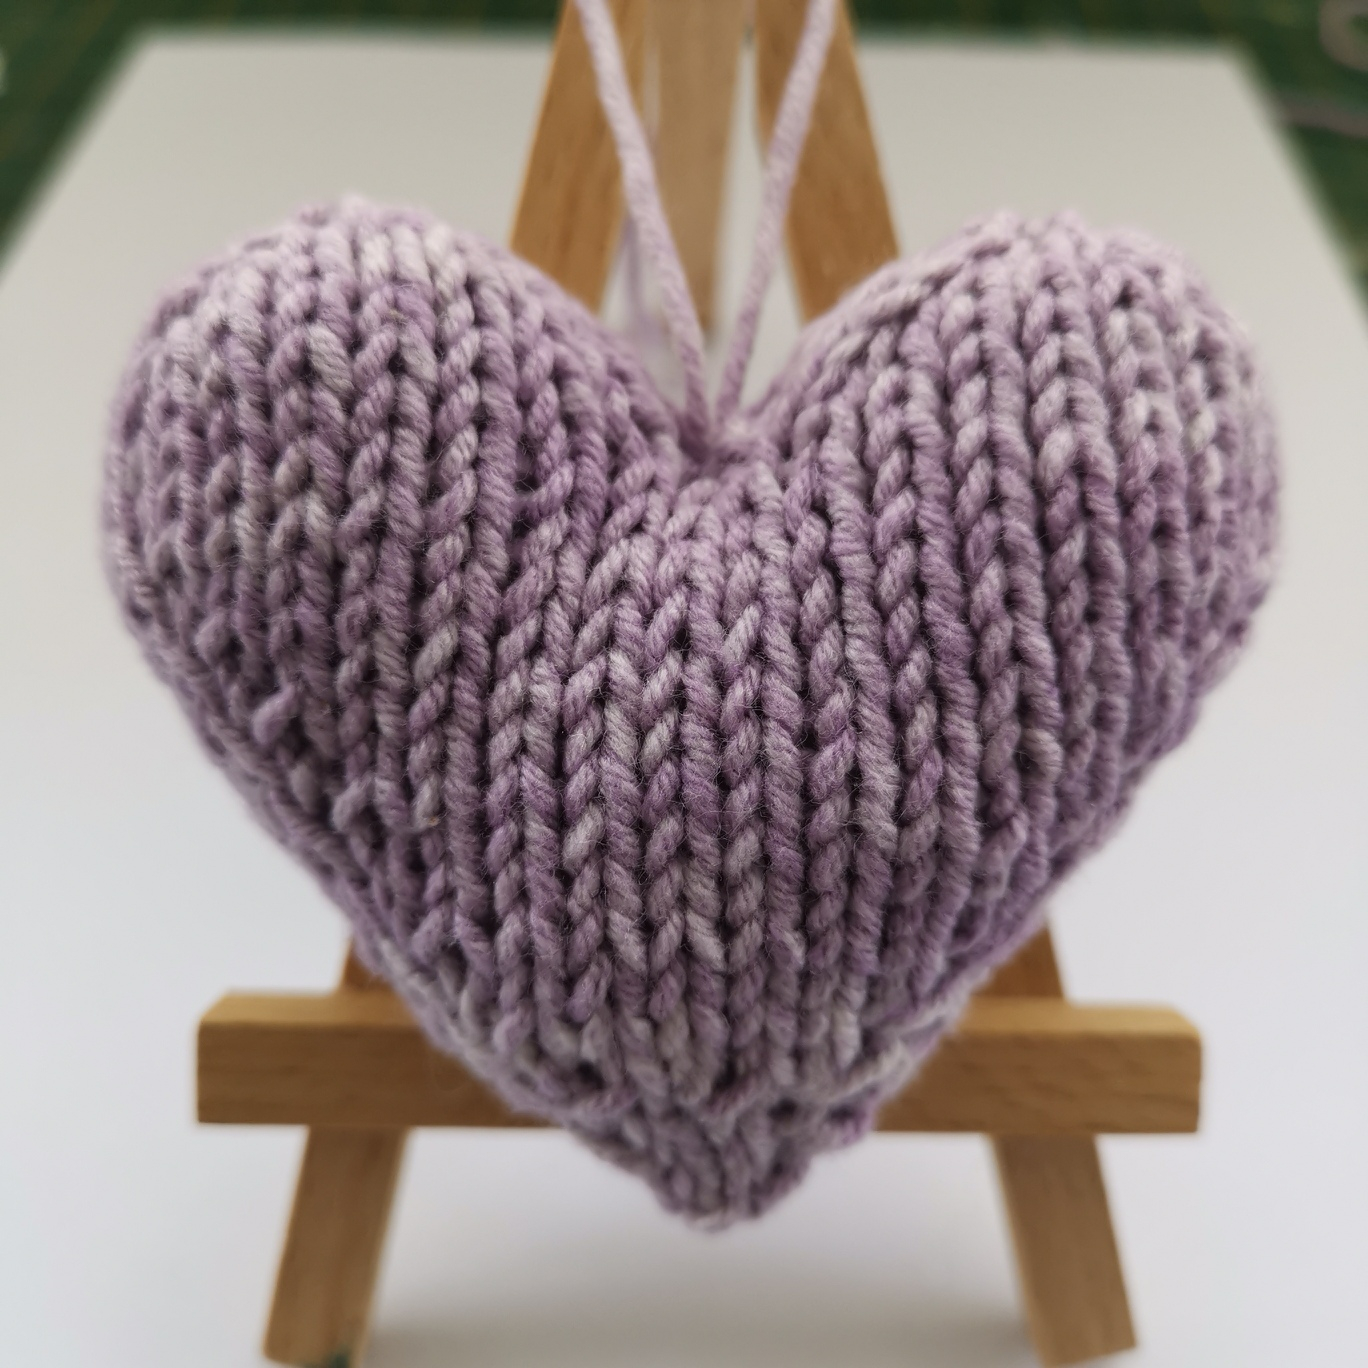 Knitted Heart Pattern My Nearly No Sew Knitted Stuffed Heart Pattern Again